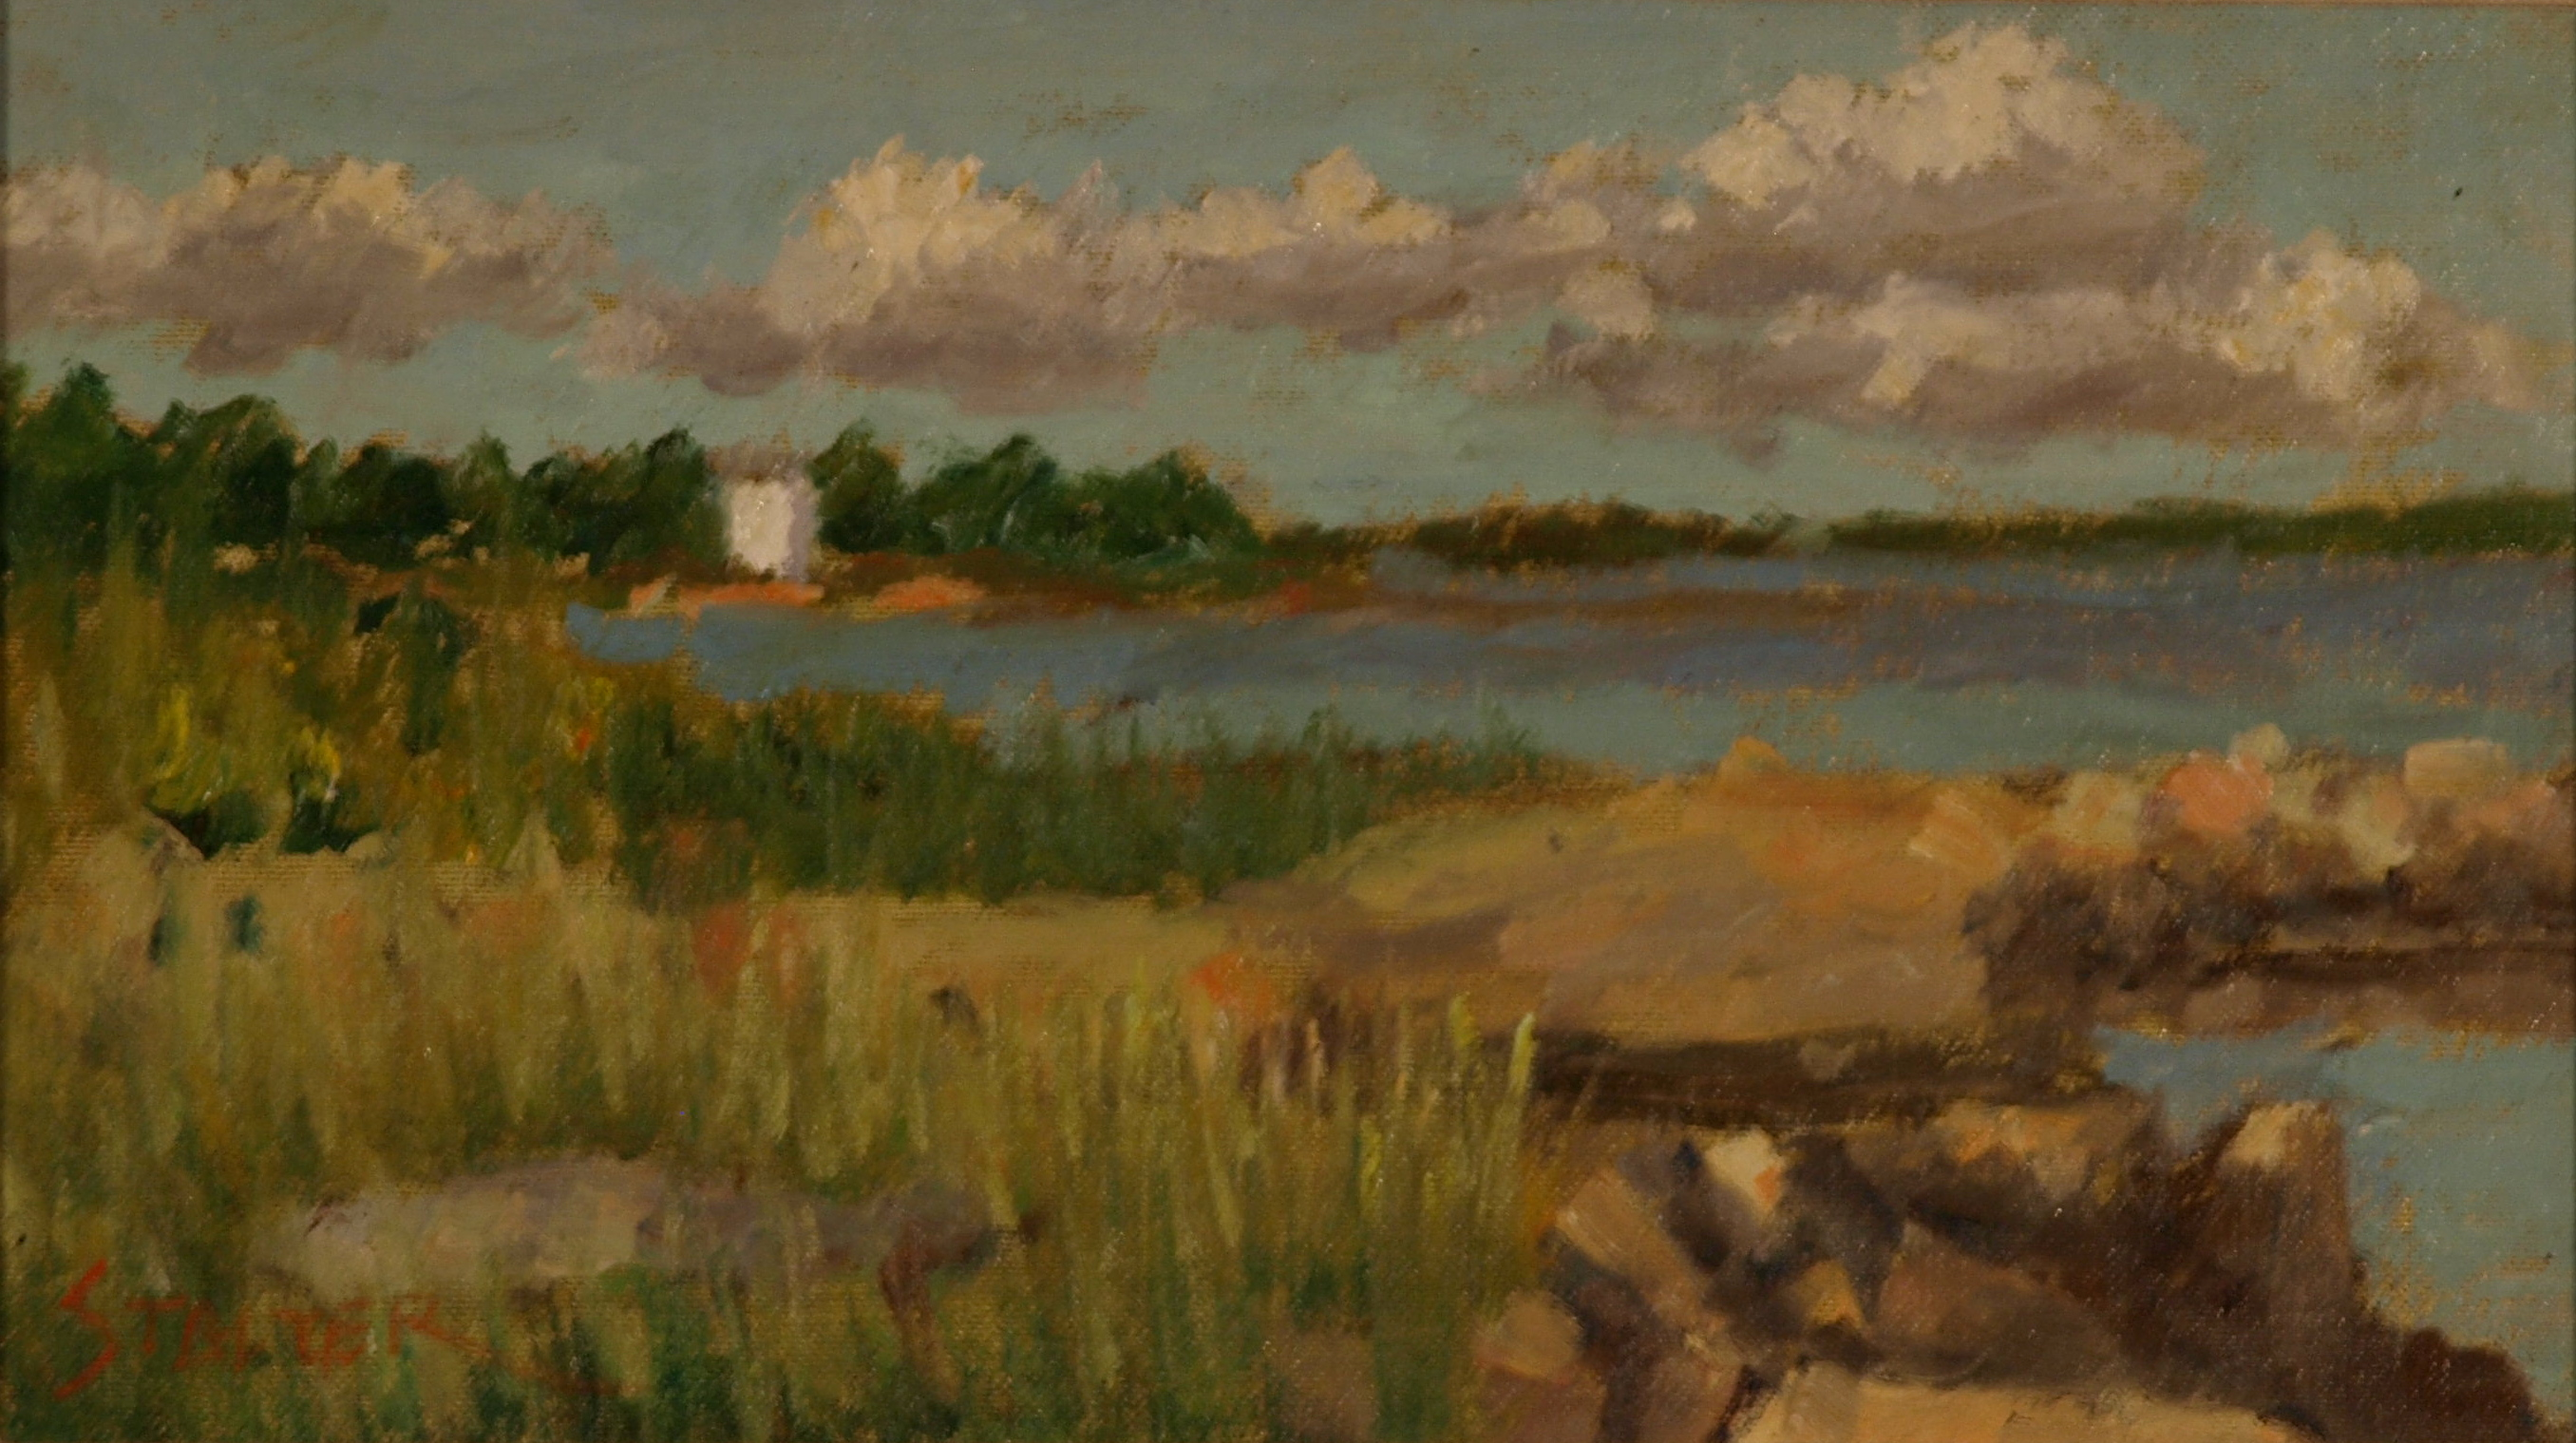 Sunny Day - Land Preserve, Oil on Canvas on Panel, 8 x 14 Inches, by Richard Stalter, $225